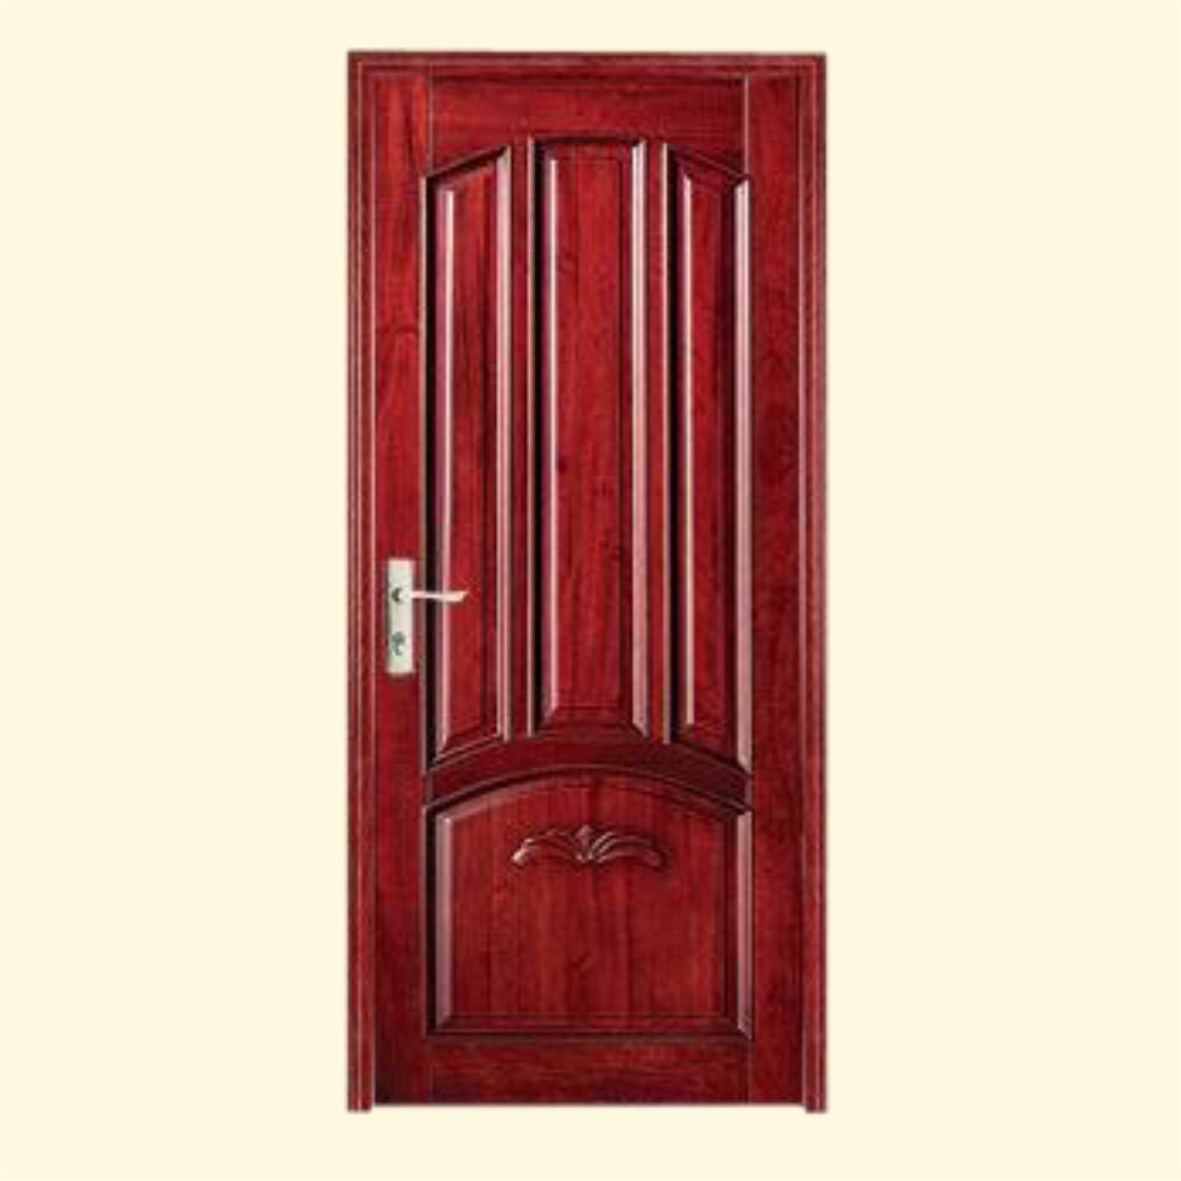 Wooden doors luxury wooden doors design for Wooden door designs pictures